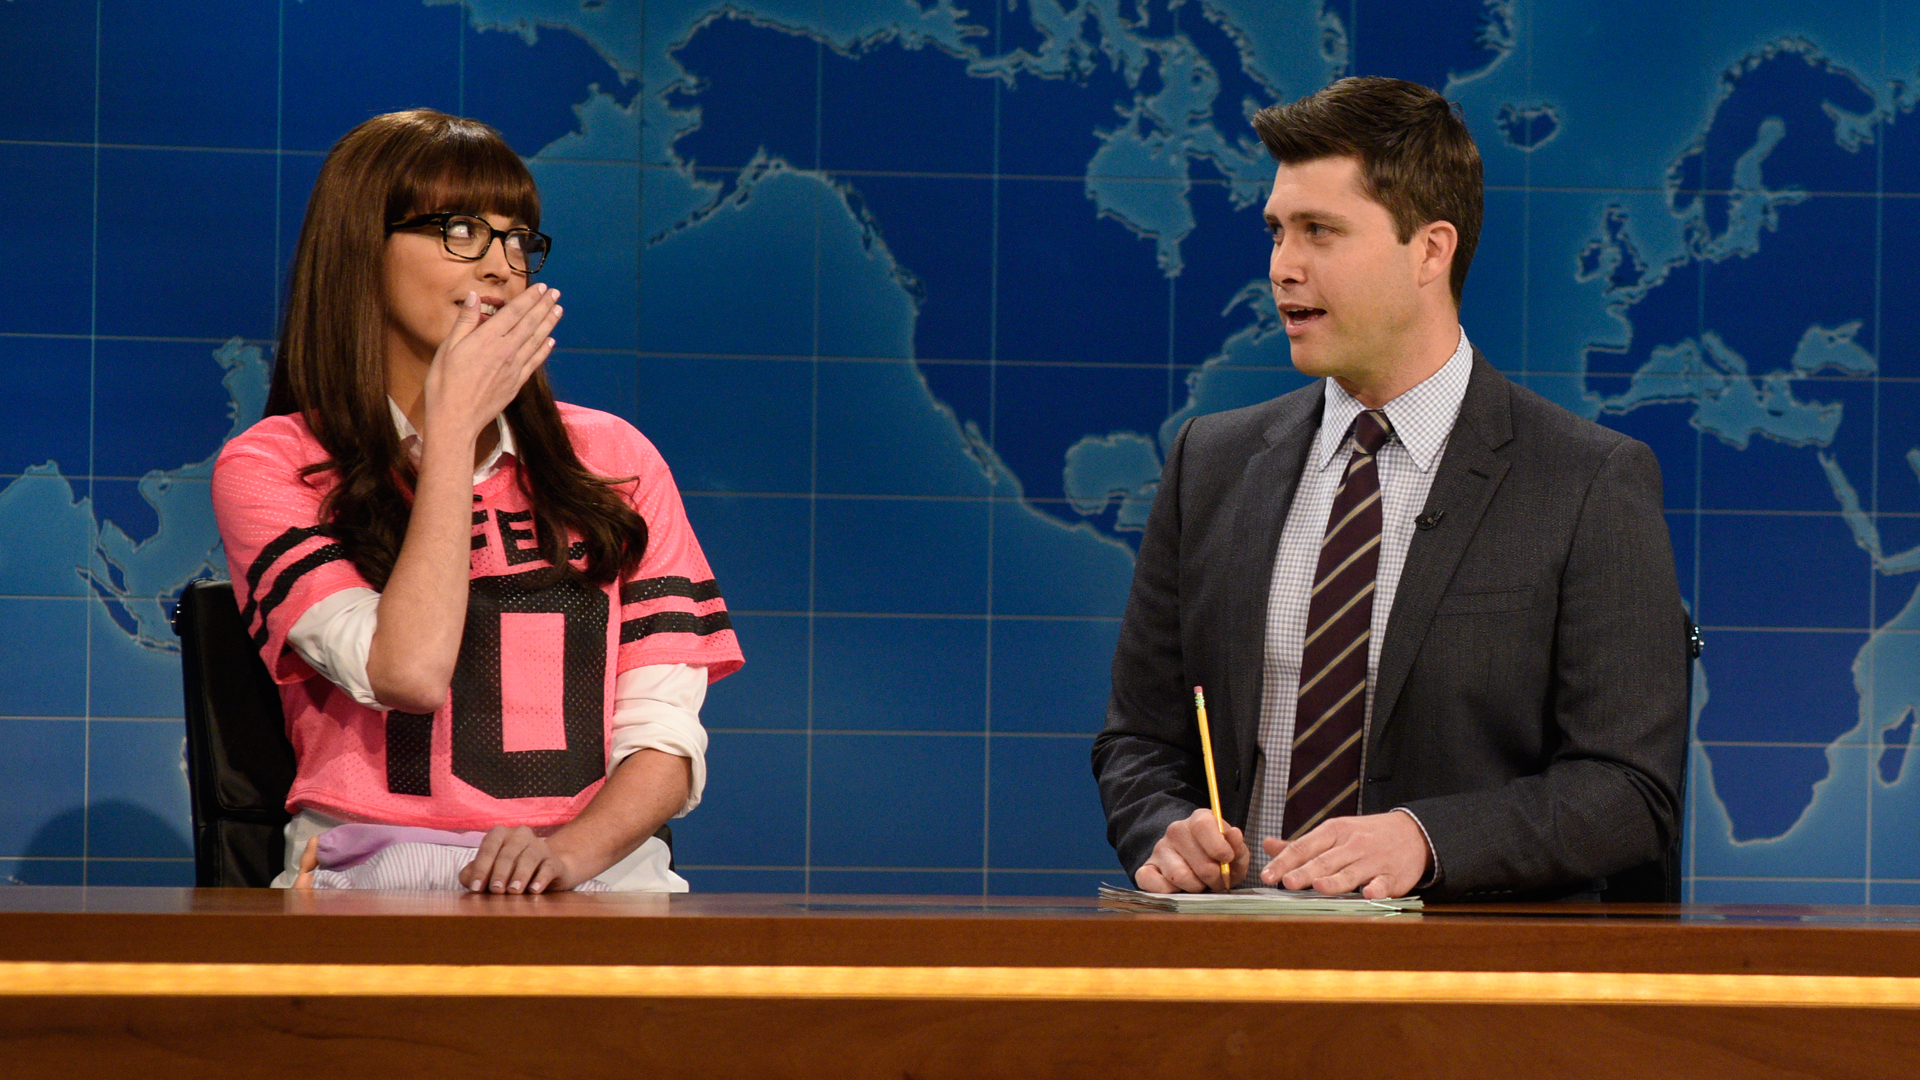 Watch Weekend Update One Dimensional Female Character On